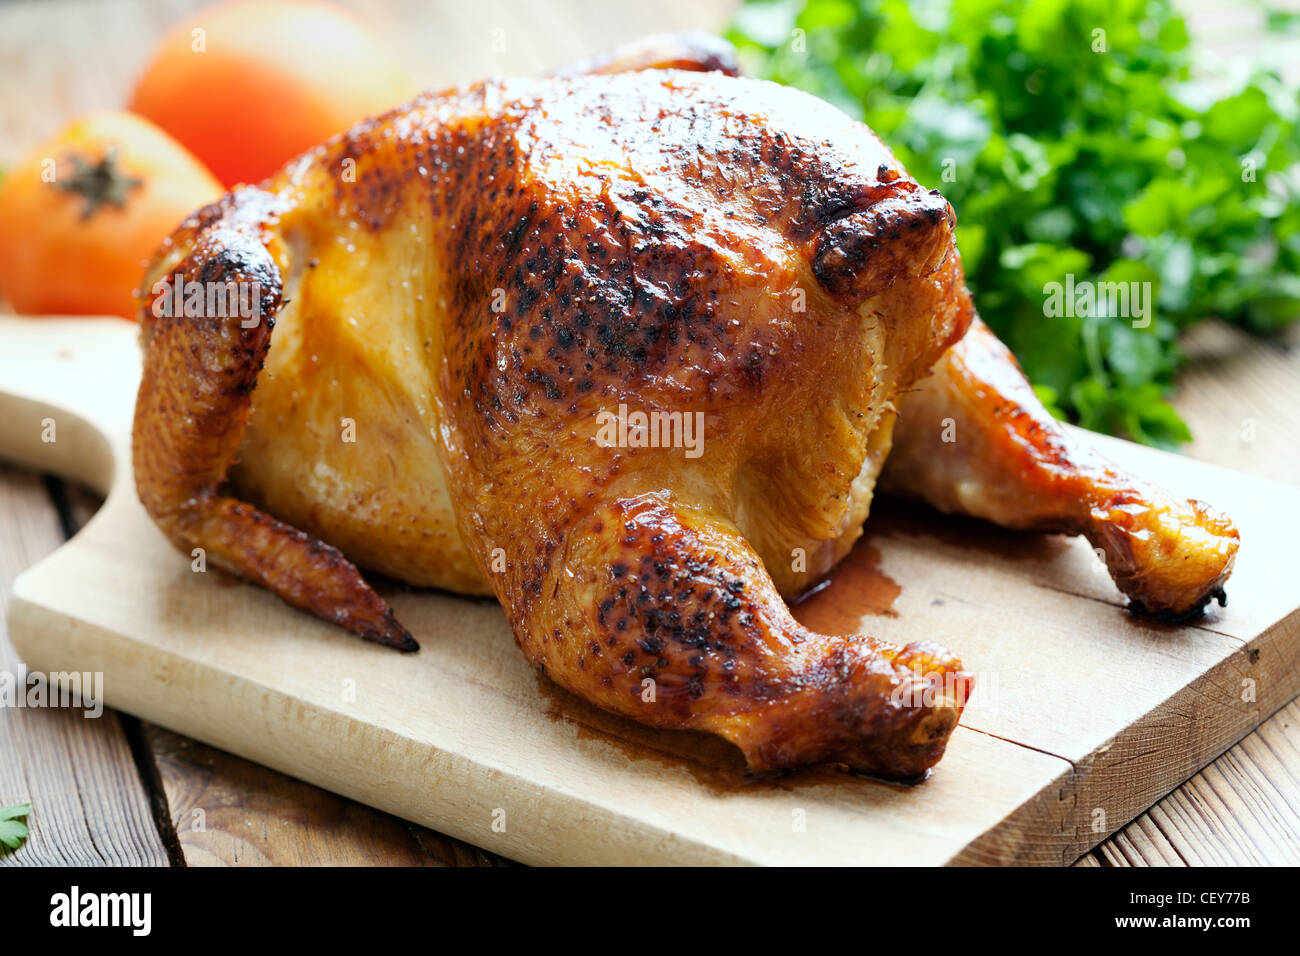 roast chicken dinner - Stock Image